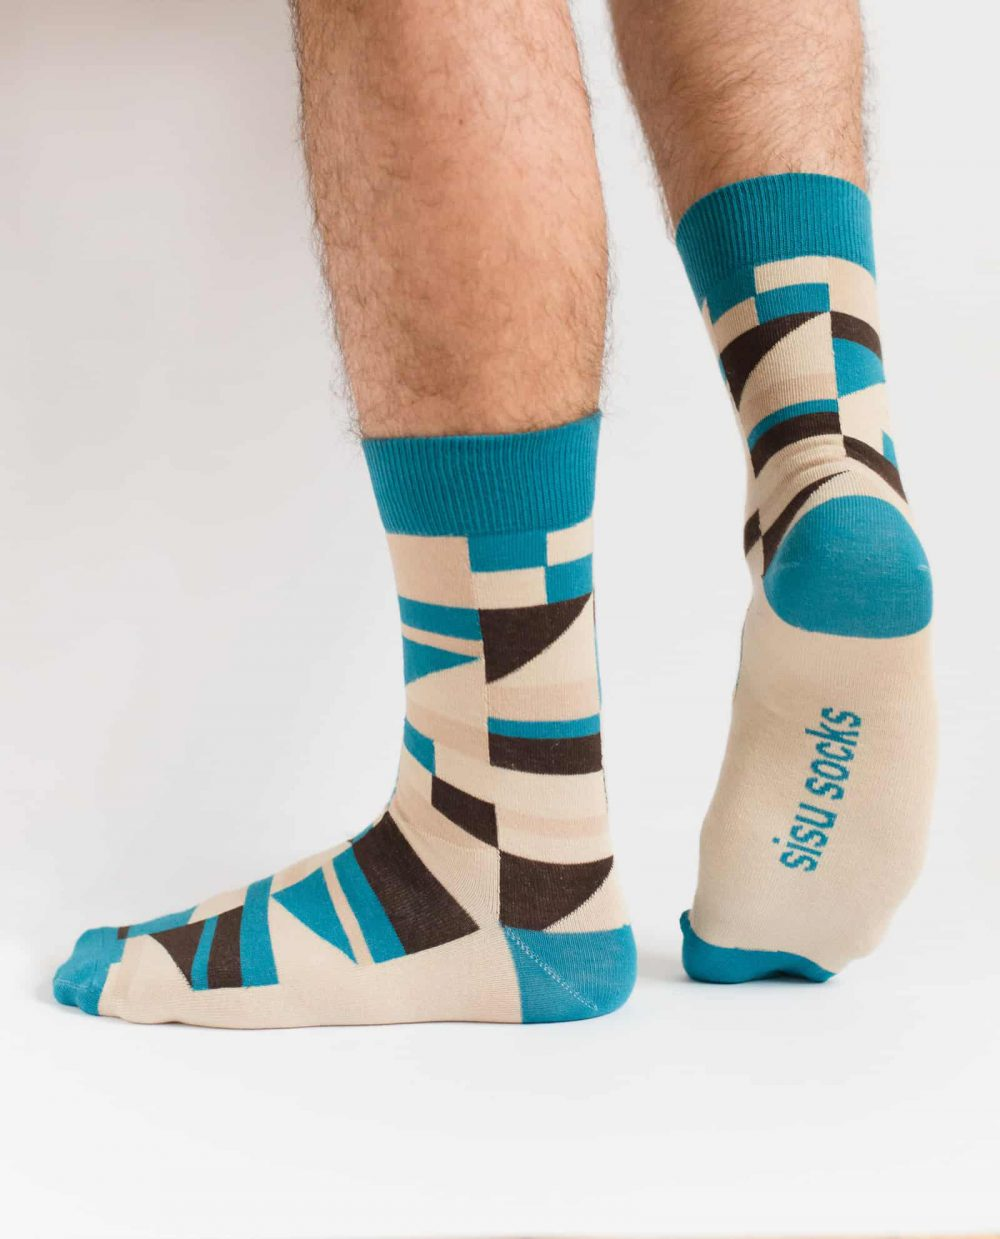 may ayim socks for men inspired by blues in Schwarzweiß from sisu socks